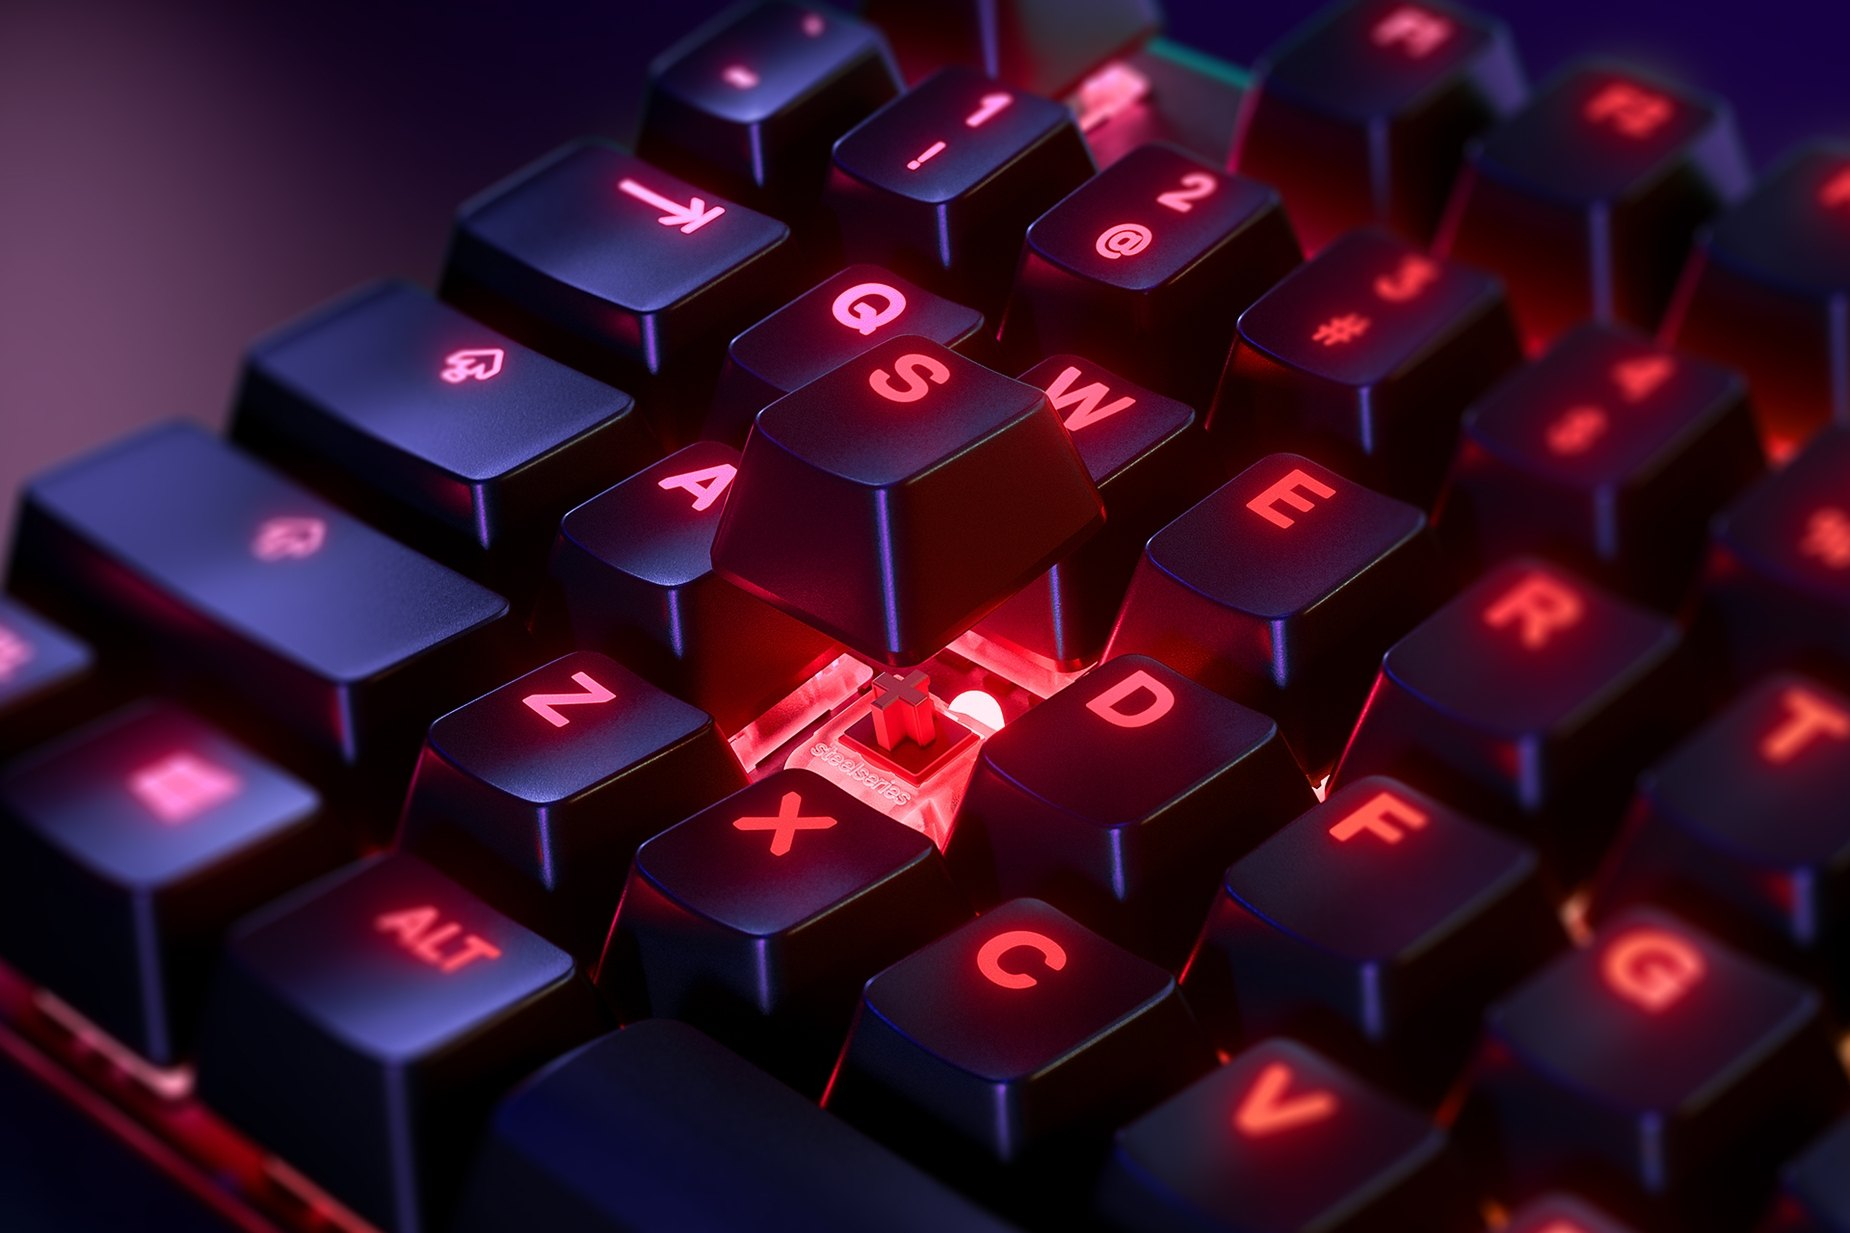 Zoomed in view of a single key on the German - Apex 7 (Kırmızı Anahtar) gaming keyboard, the key is raised up to show the SteelSeries QX2 Mechanical RGB Switch underneath